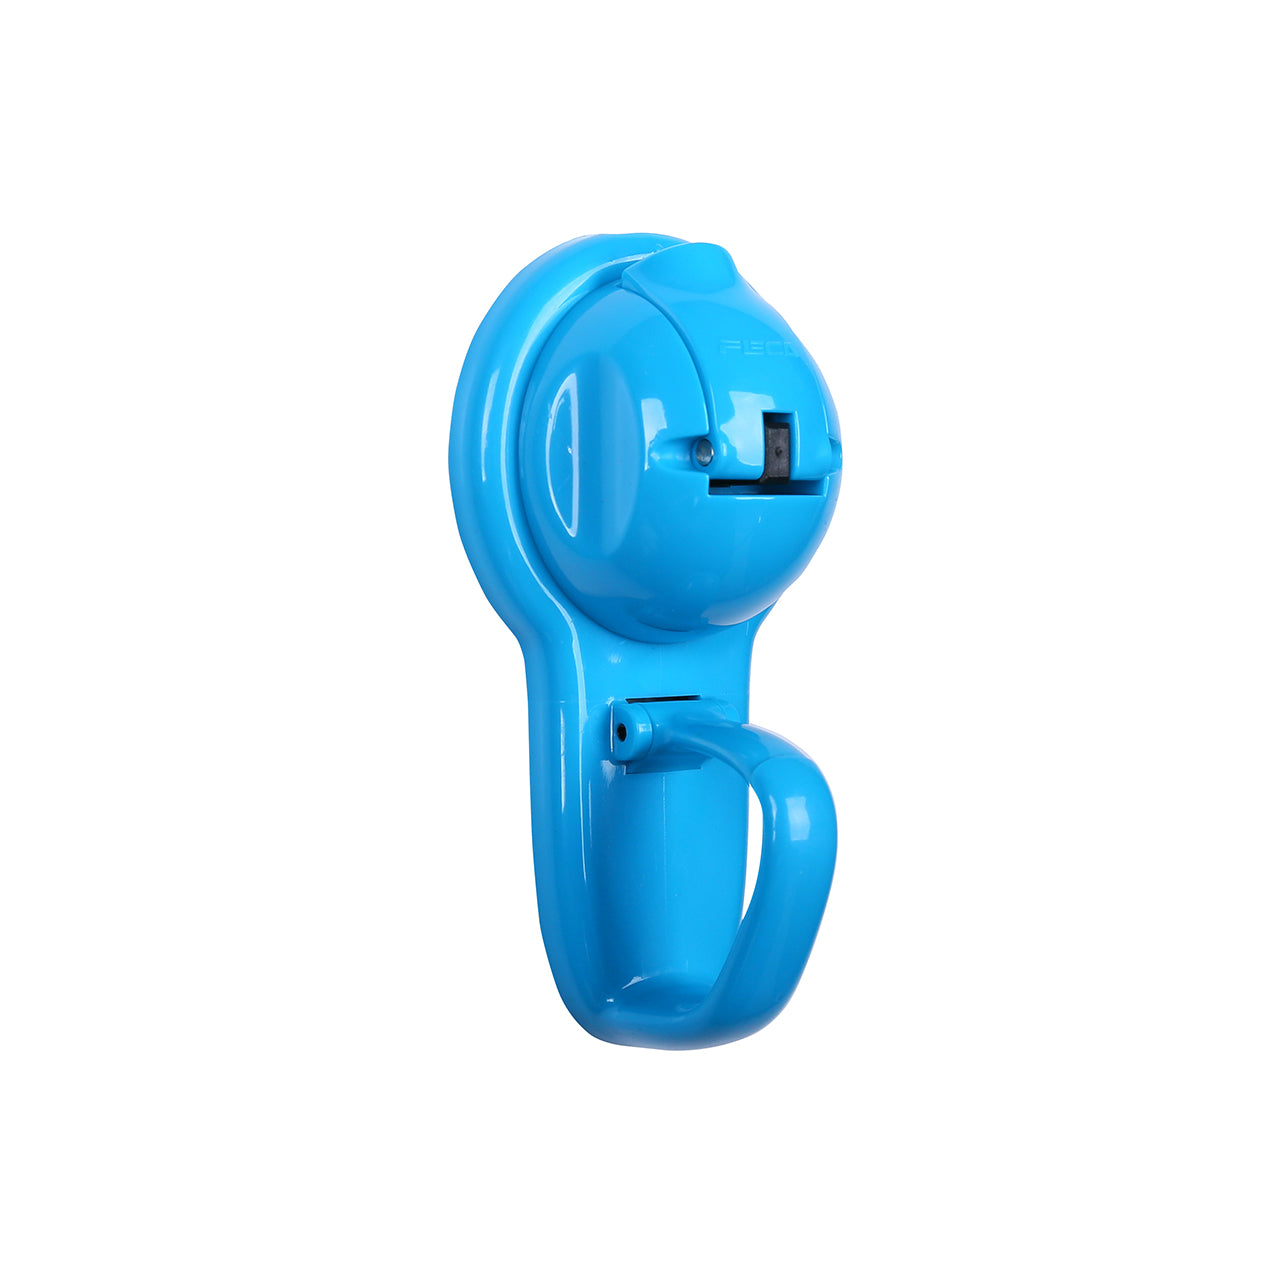 S3 SAMURAI SUCTION HOOK WITH SAFETY LOCK -BLUE